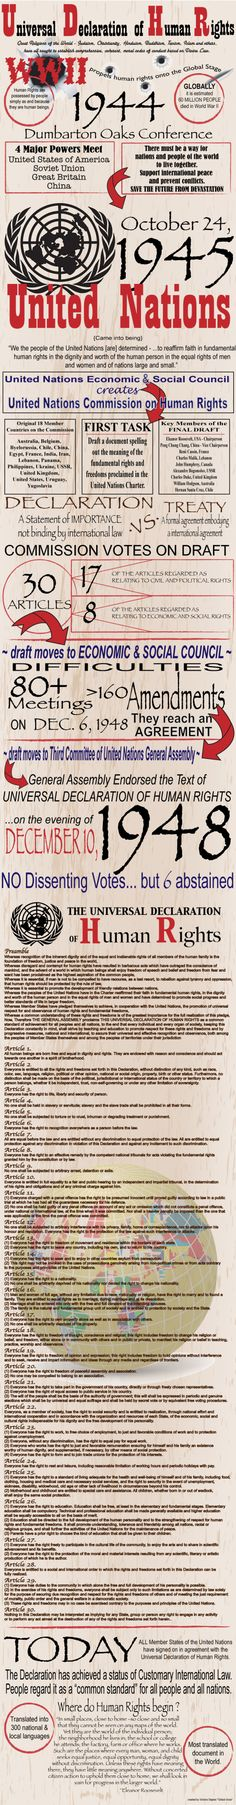 The Universal Declaration of Human Rights PREAMBLE Whereas ...